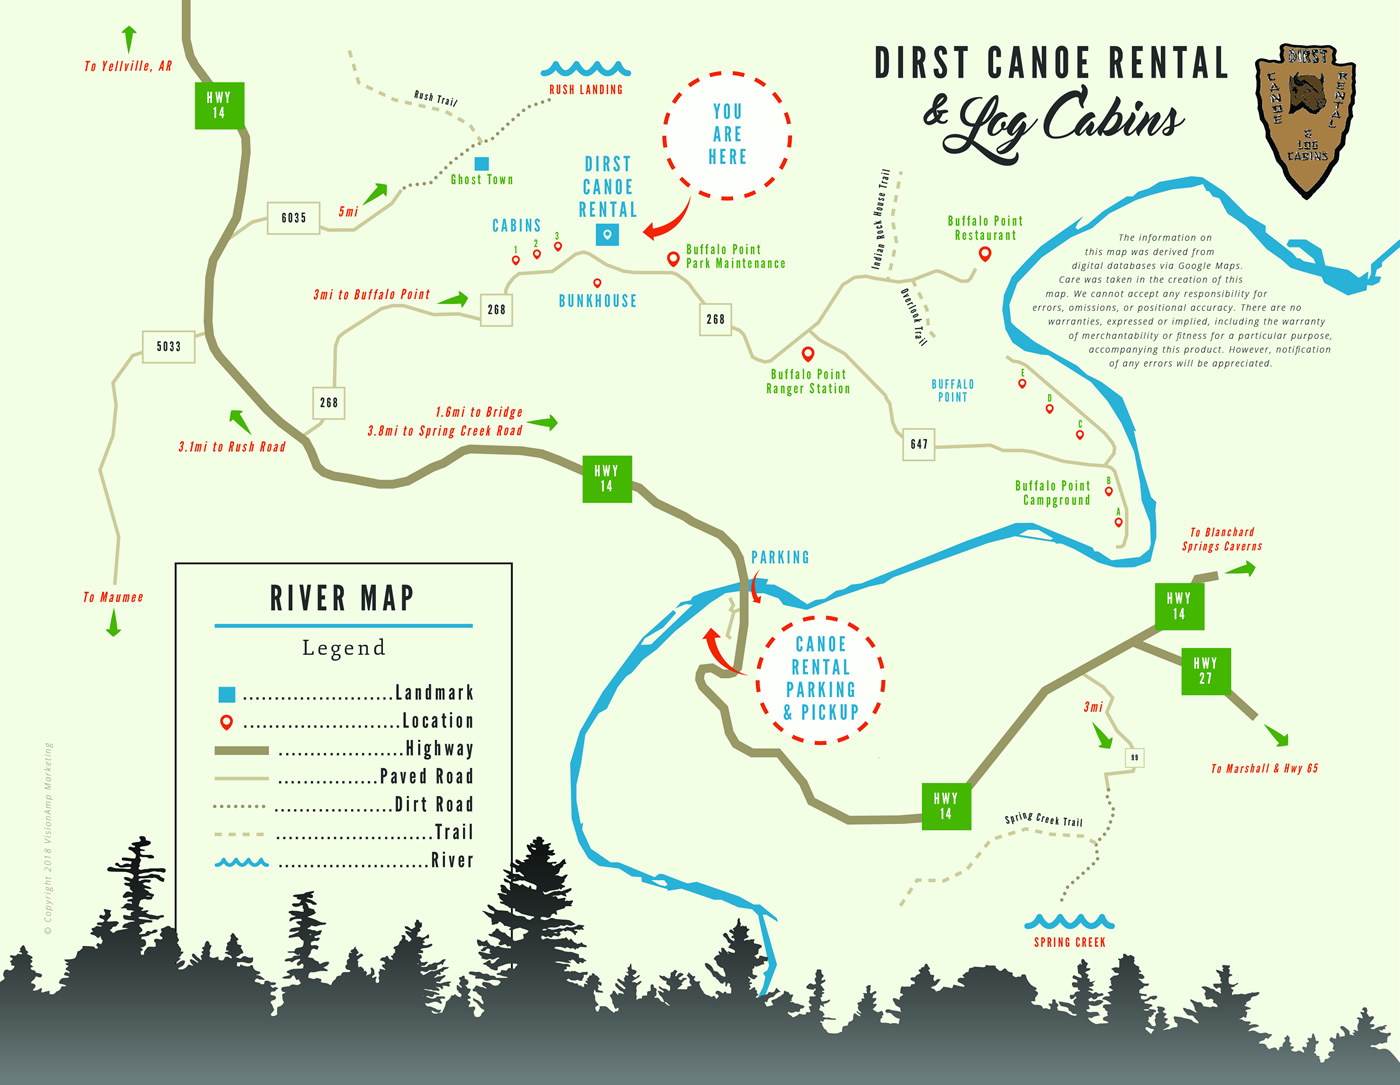 River Map | Dirst Canoe Rental & Log Cabins | Buffalo National River